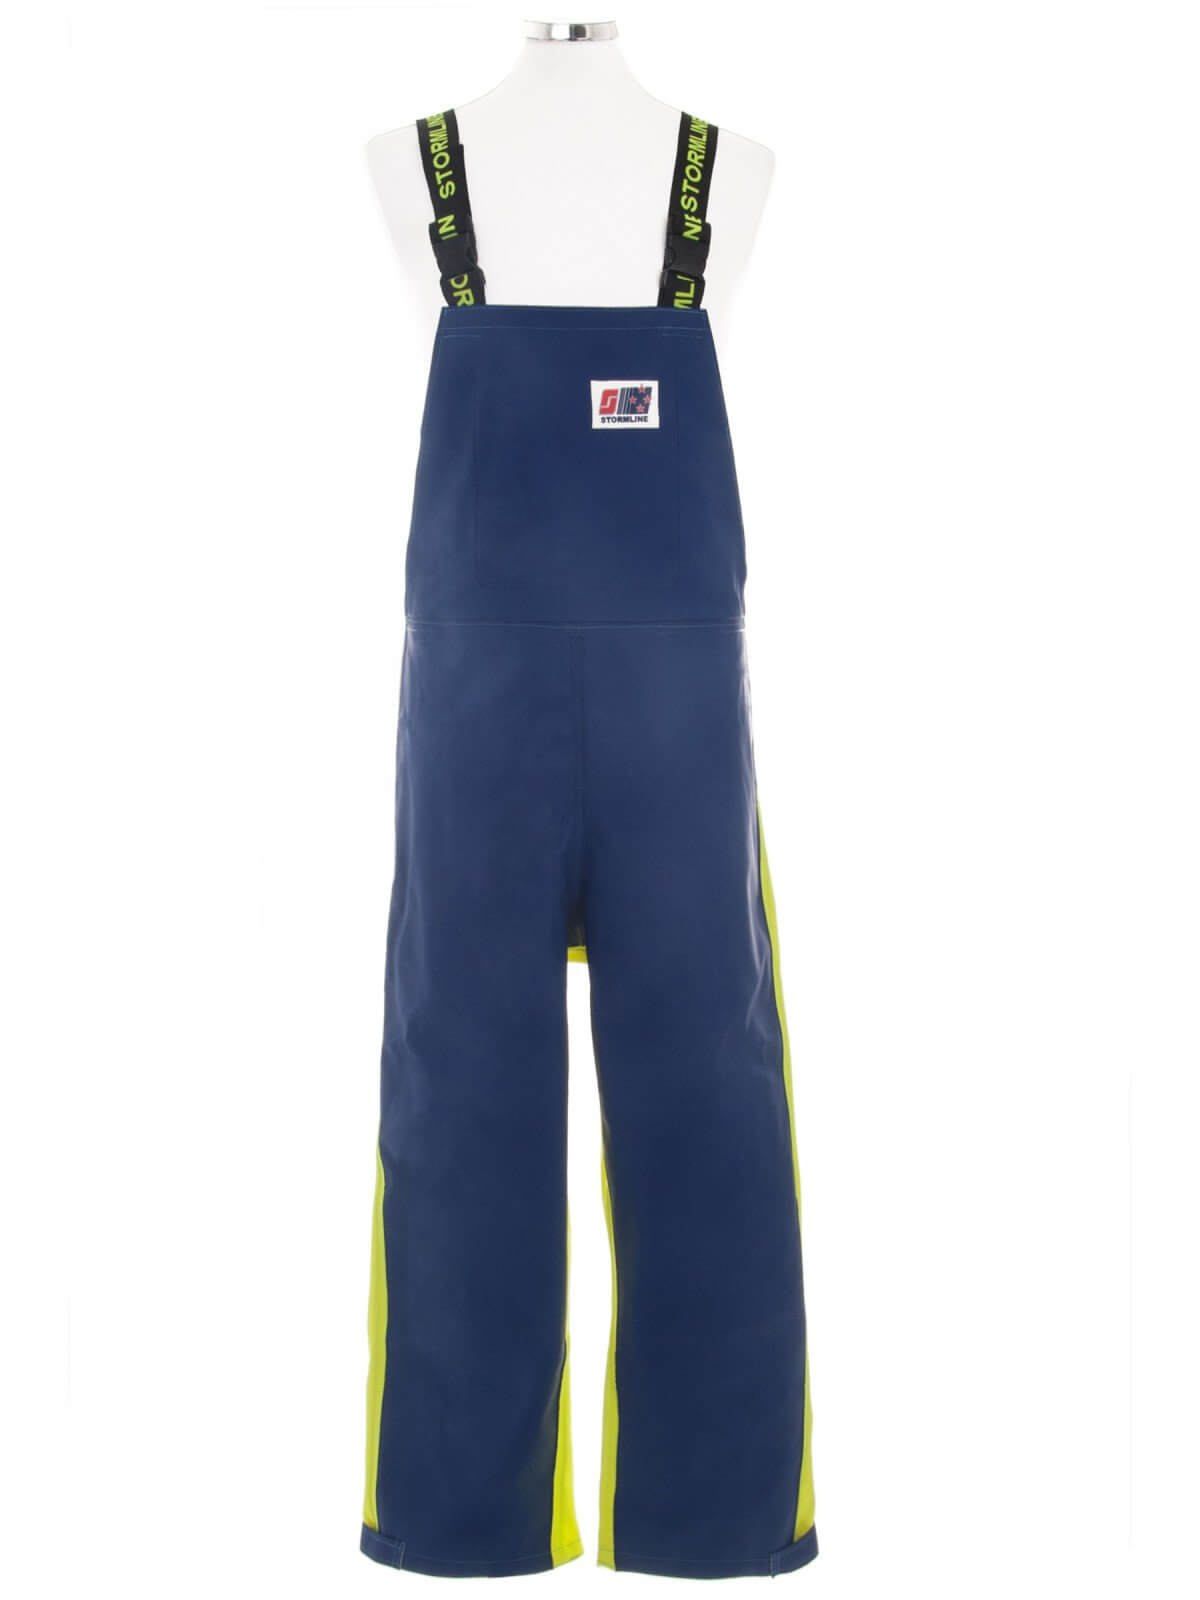 crew 655 675 heavy duty fishing foul weather gear pants